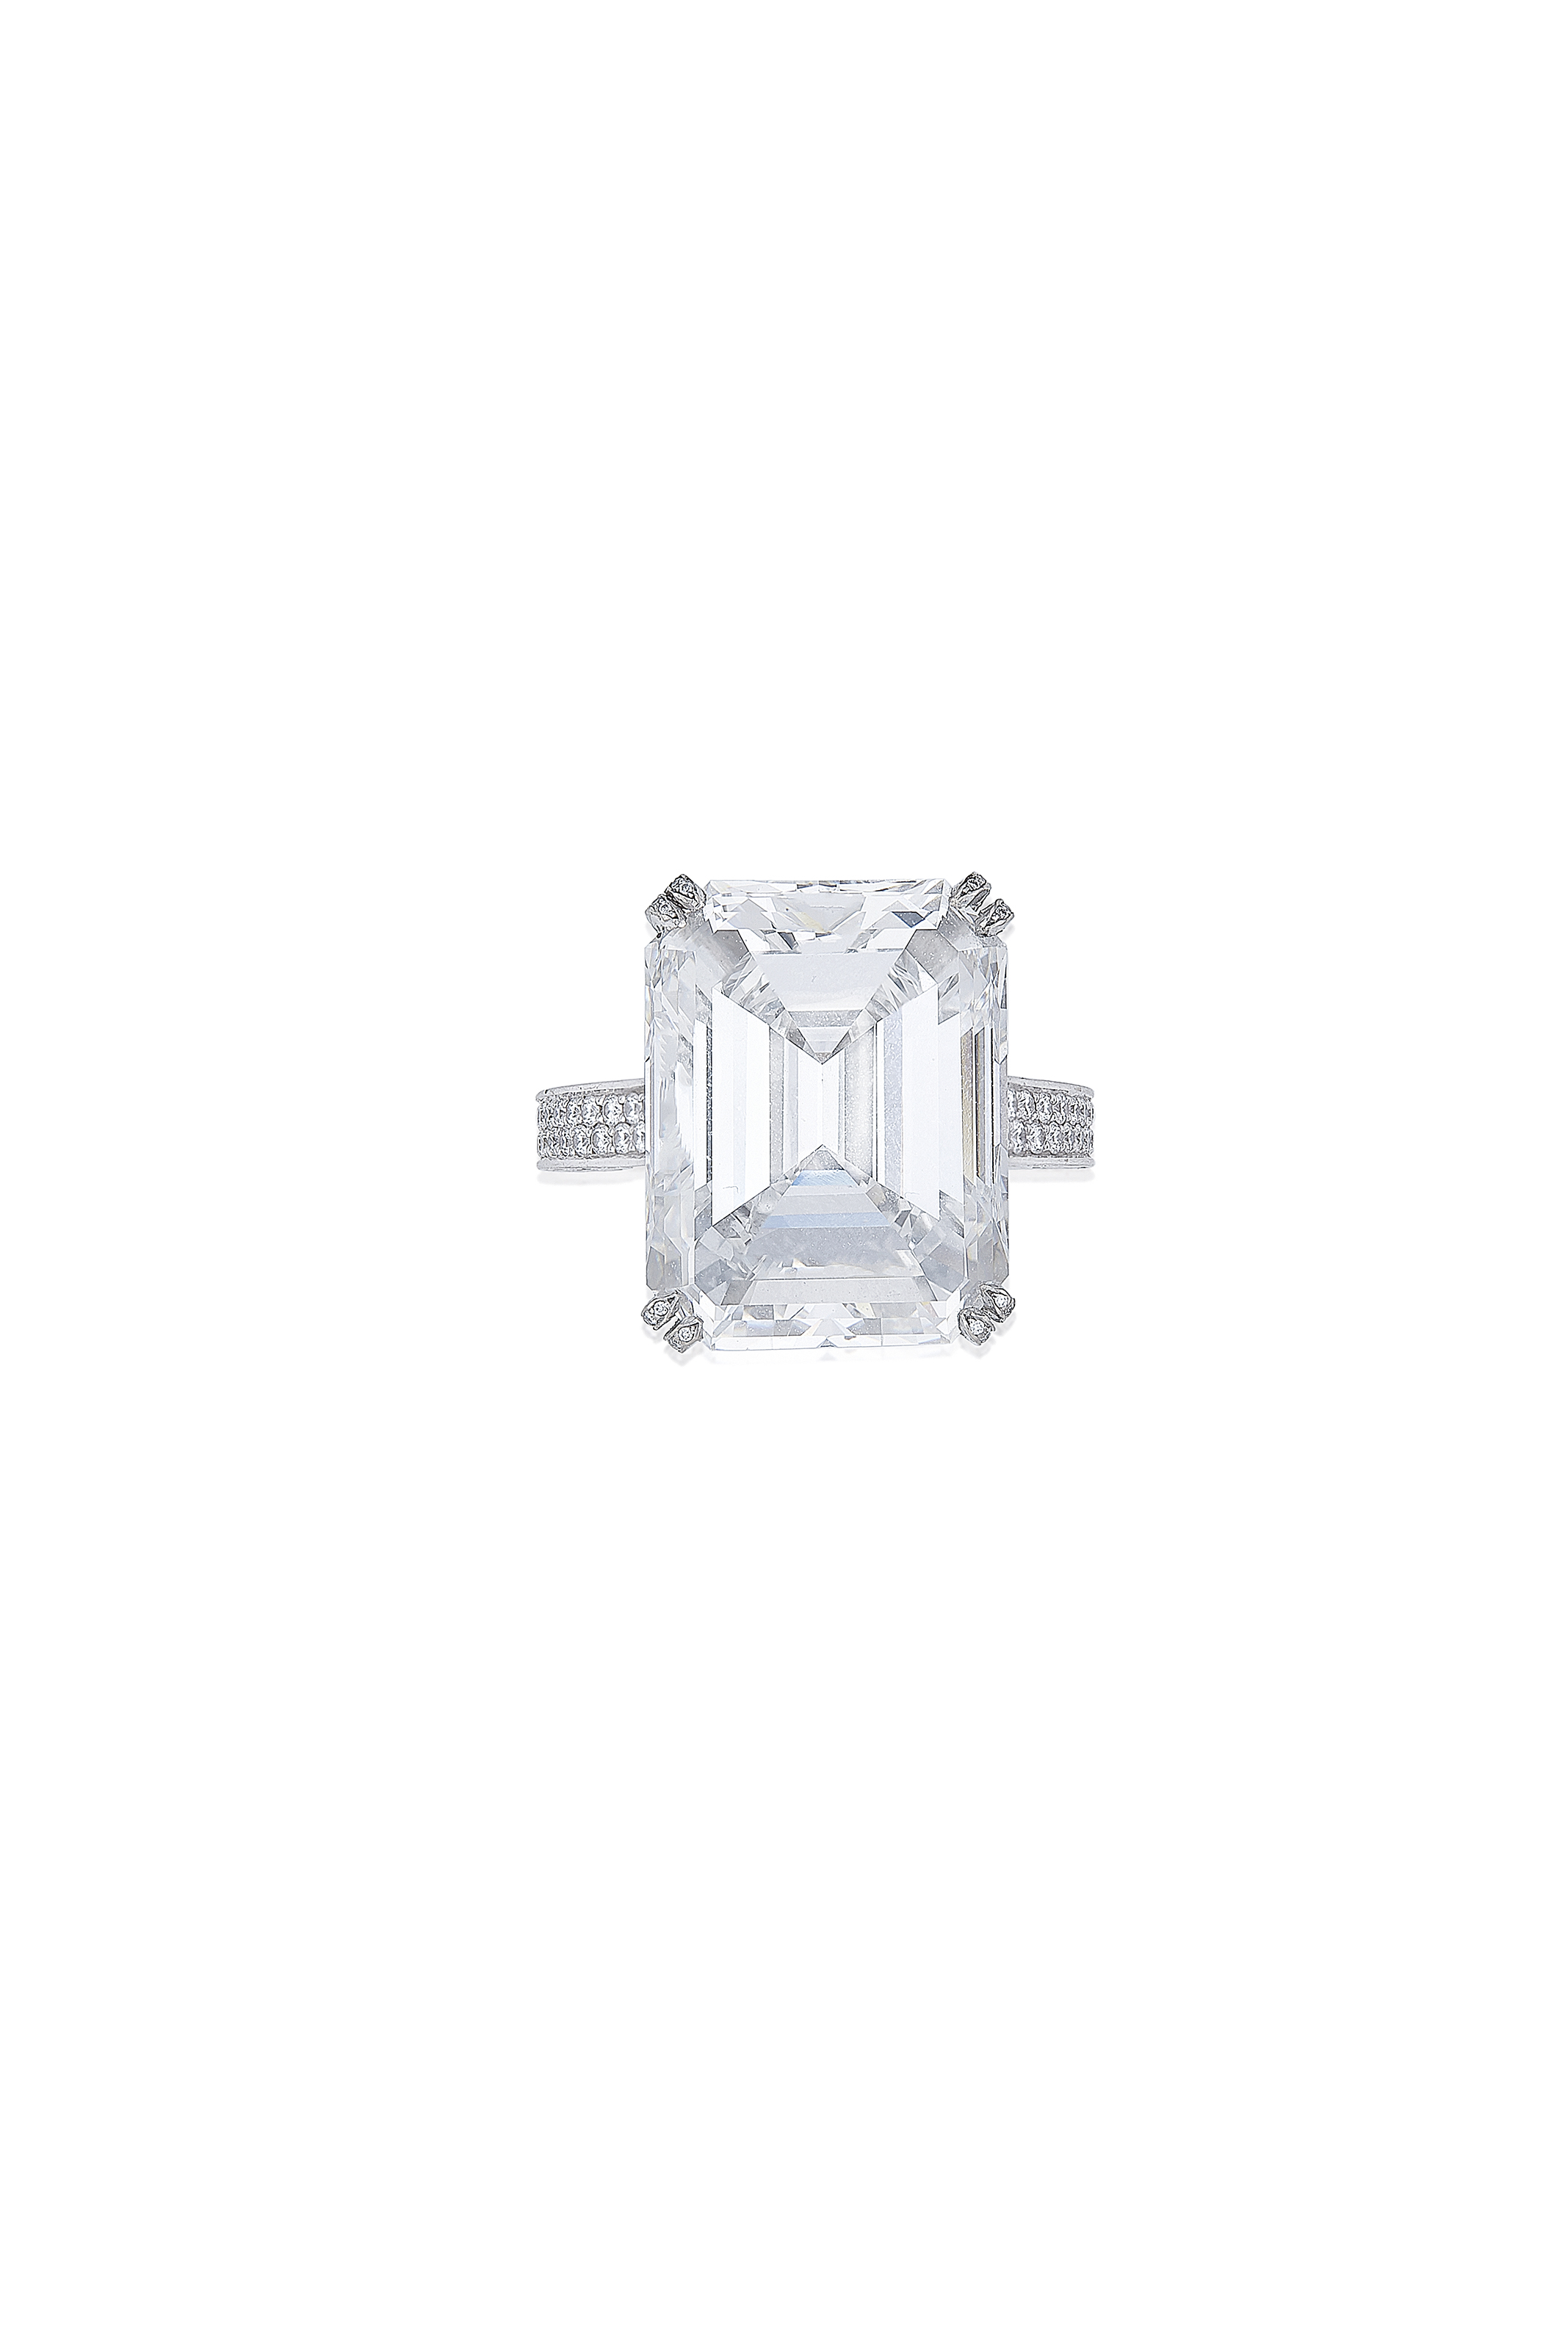 A DIAMOND RING, BY CHOPARD